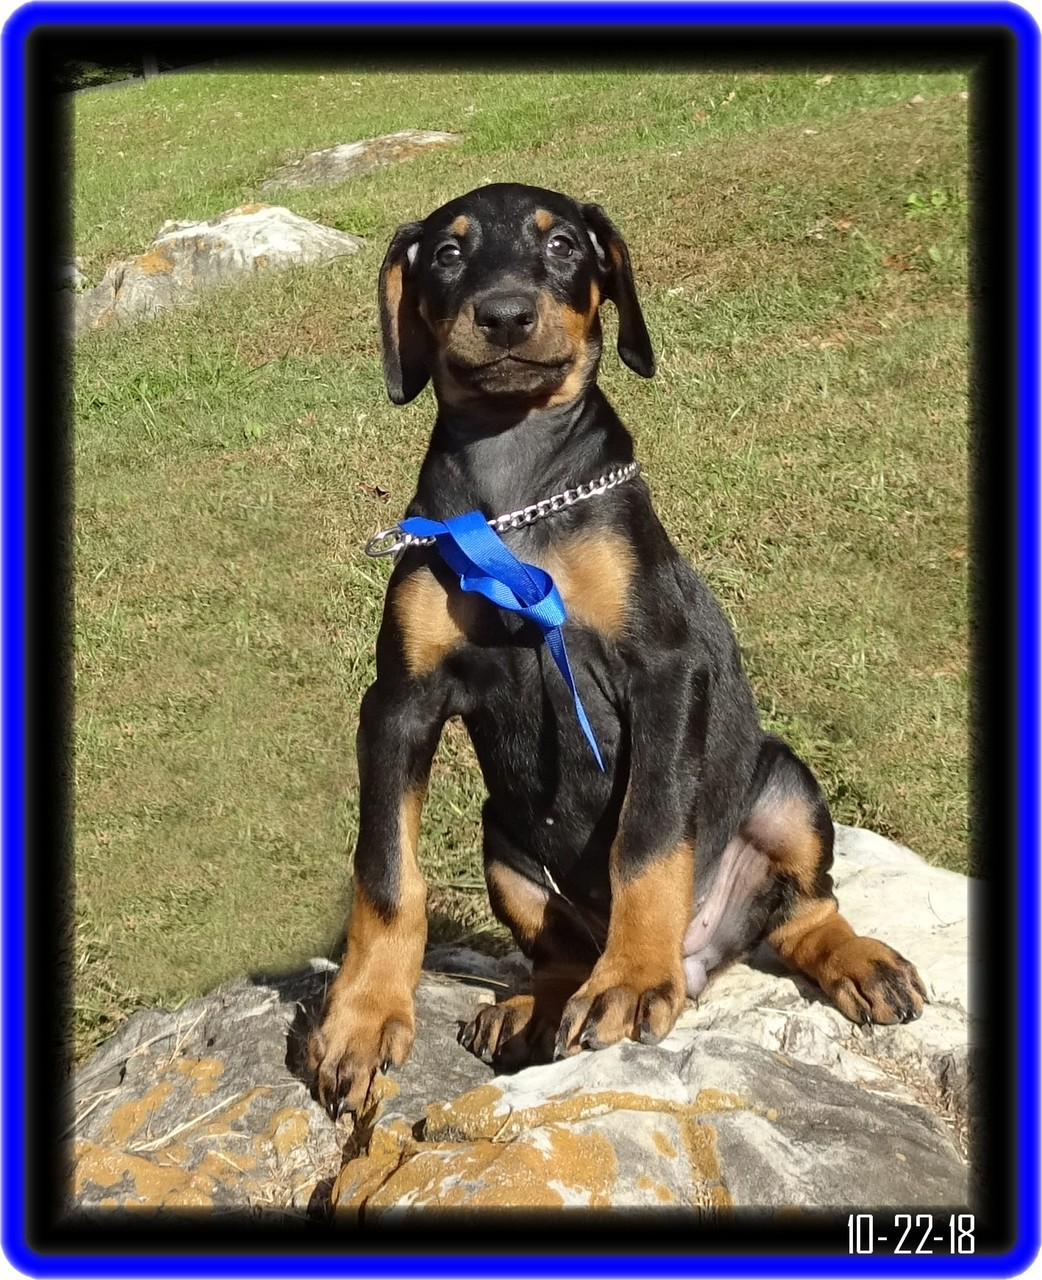 Raven - Zoey & Max pup / placed - selected for IPO competition ...Swansea SC